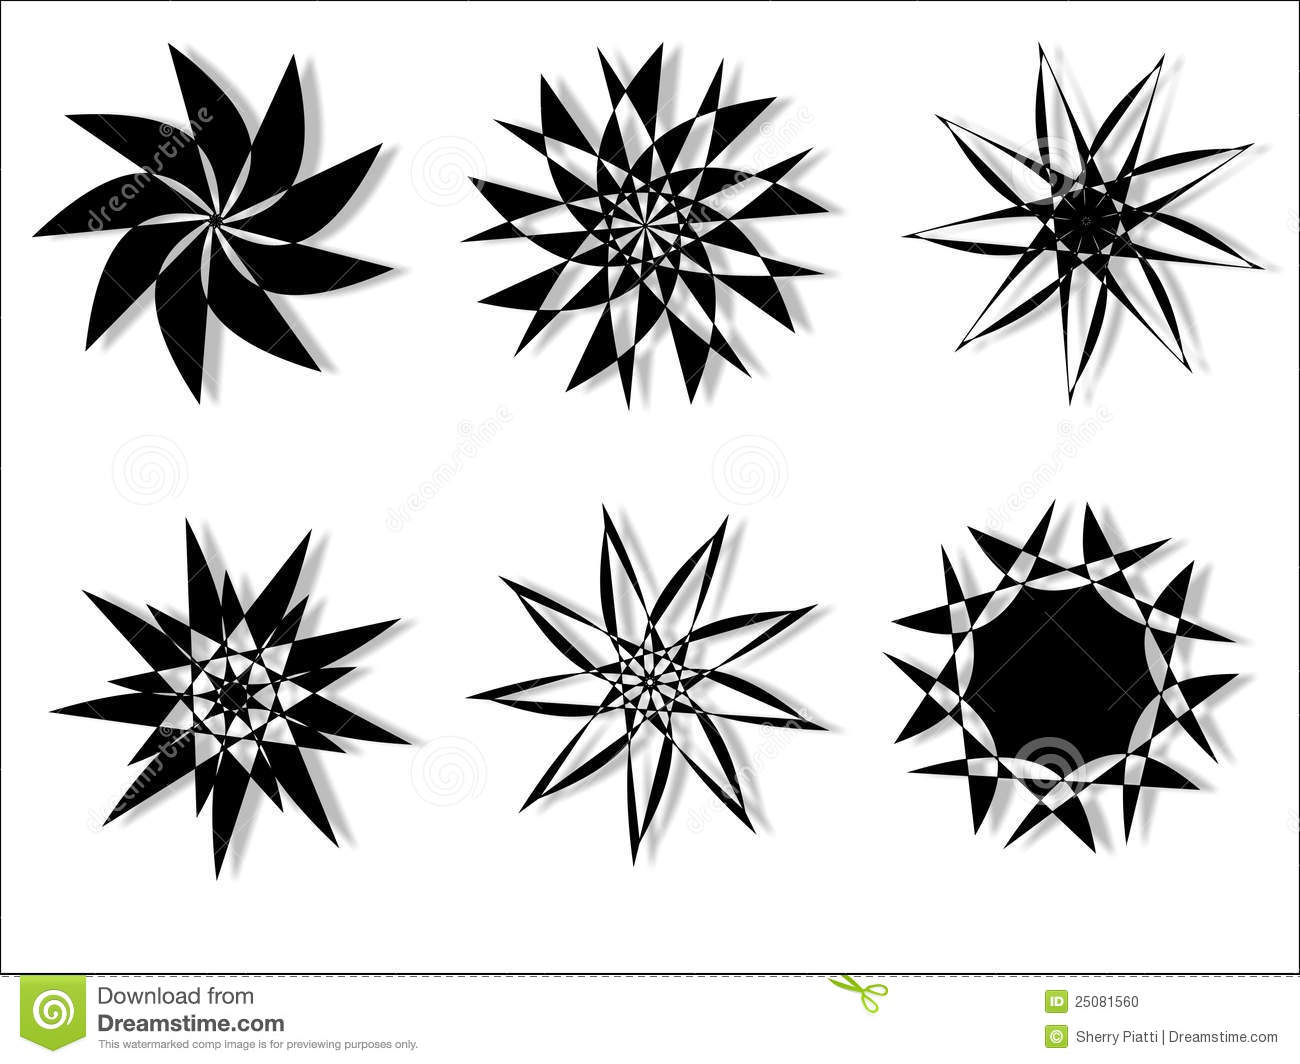 Vector Floral Circular Design Stock Photo - Image: 25081560